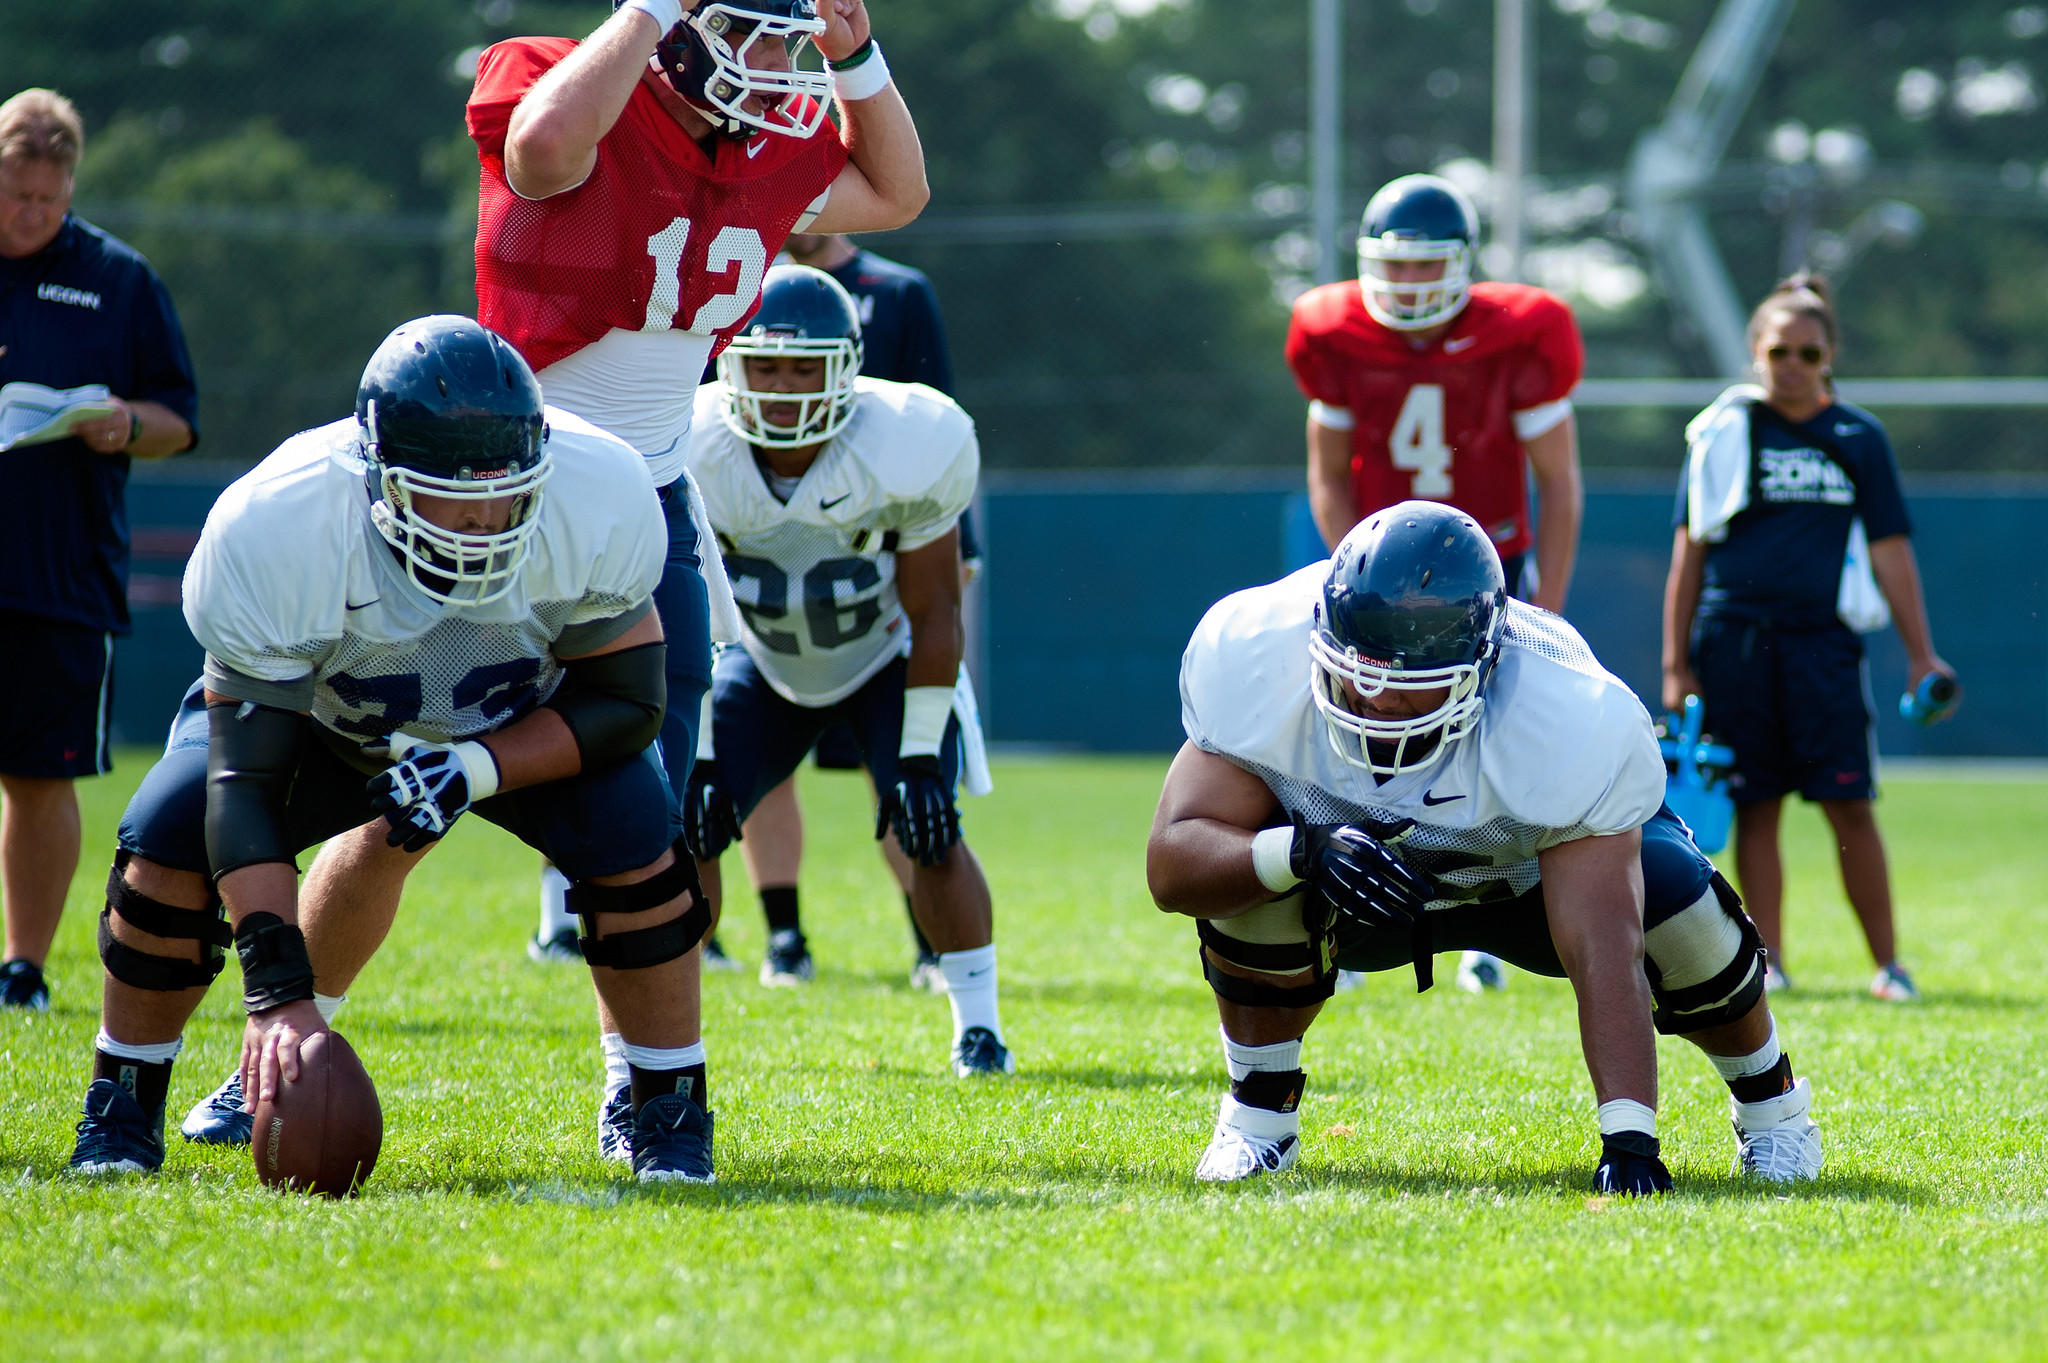 Offensive Linemen, Alex Mateas, left, and Guz Cruz run through formations during practice Wednesday.